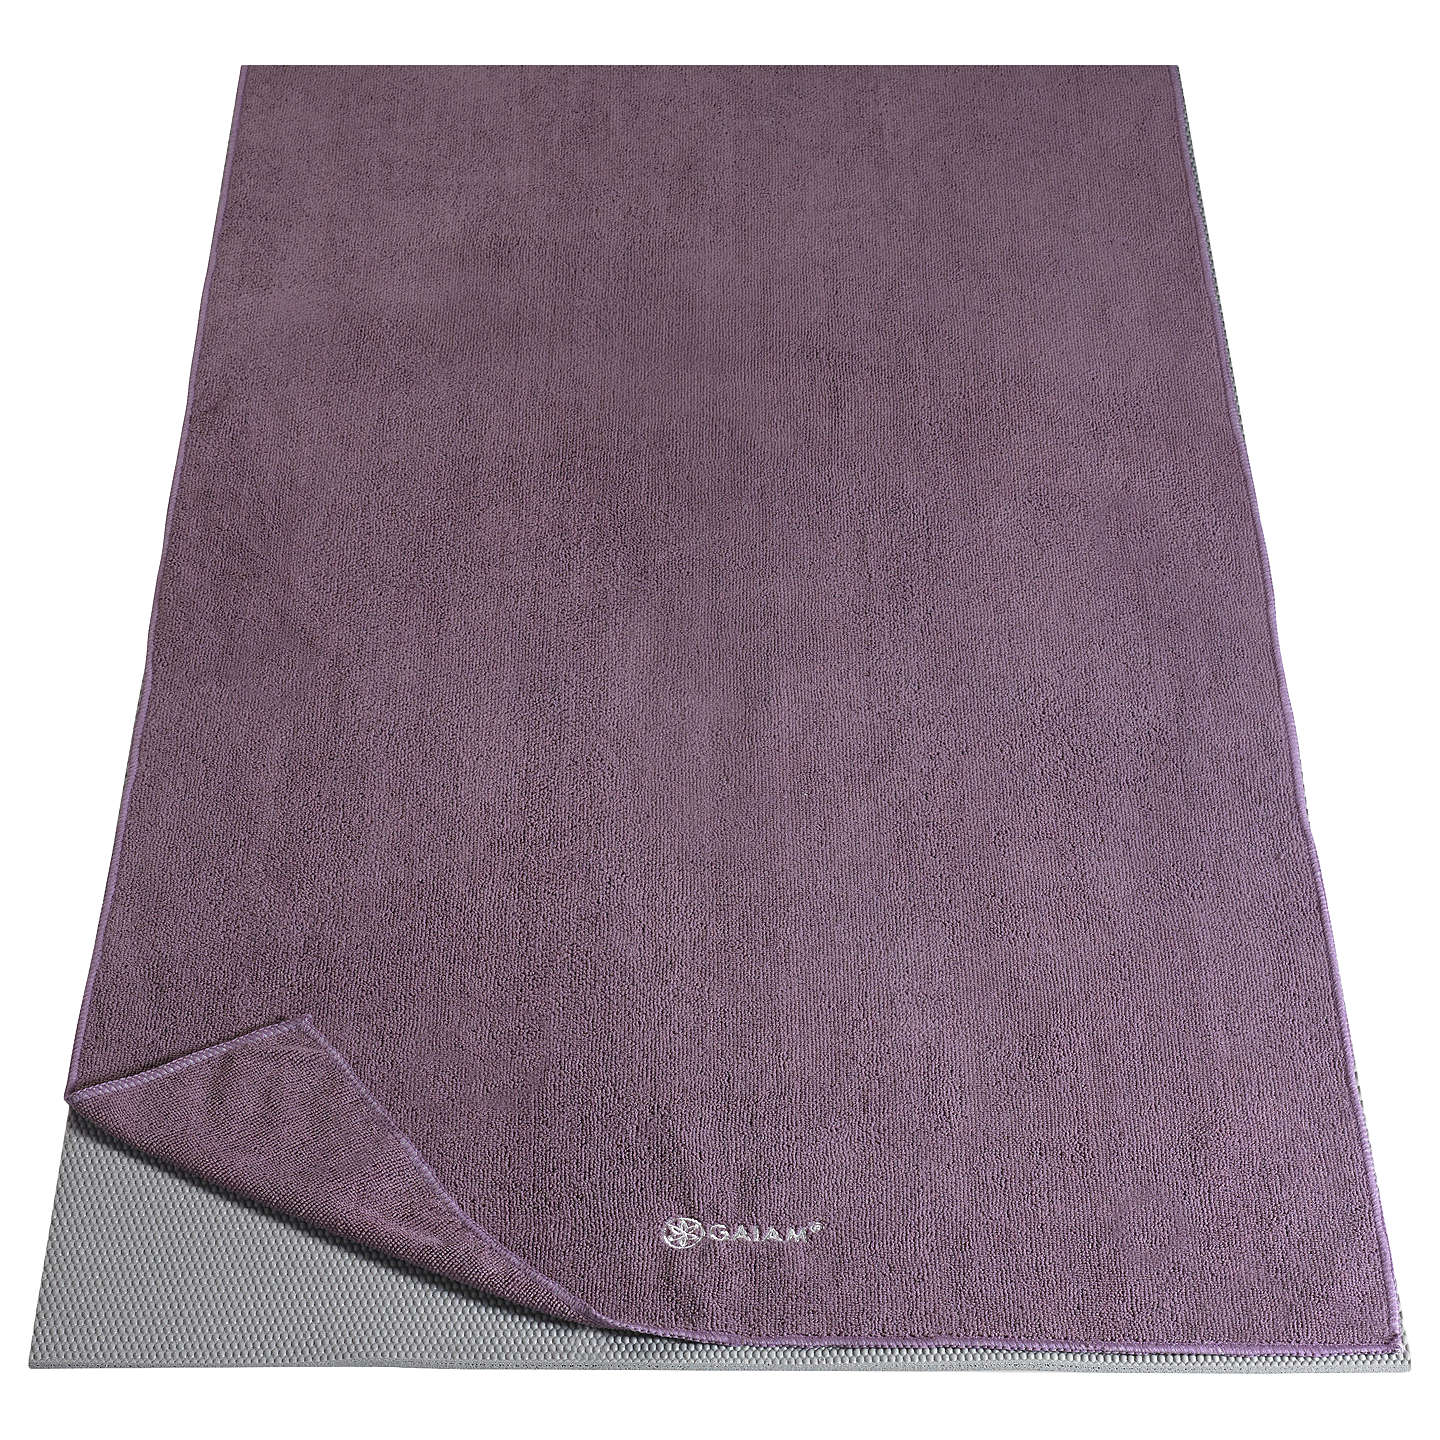 BuyGaiam Thirsty Yoga Towel, Purple Online at johnlewis.com